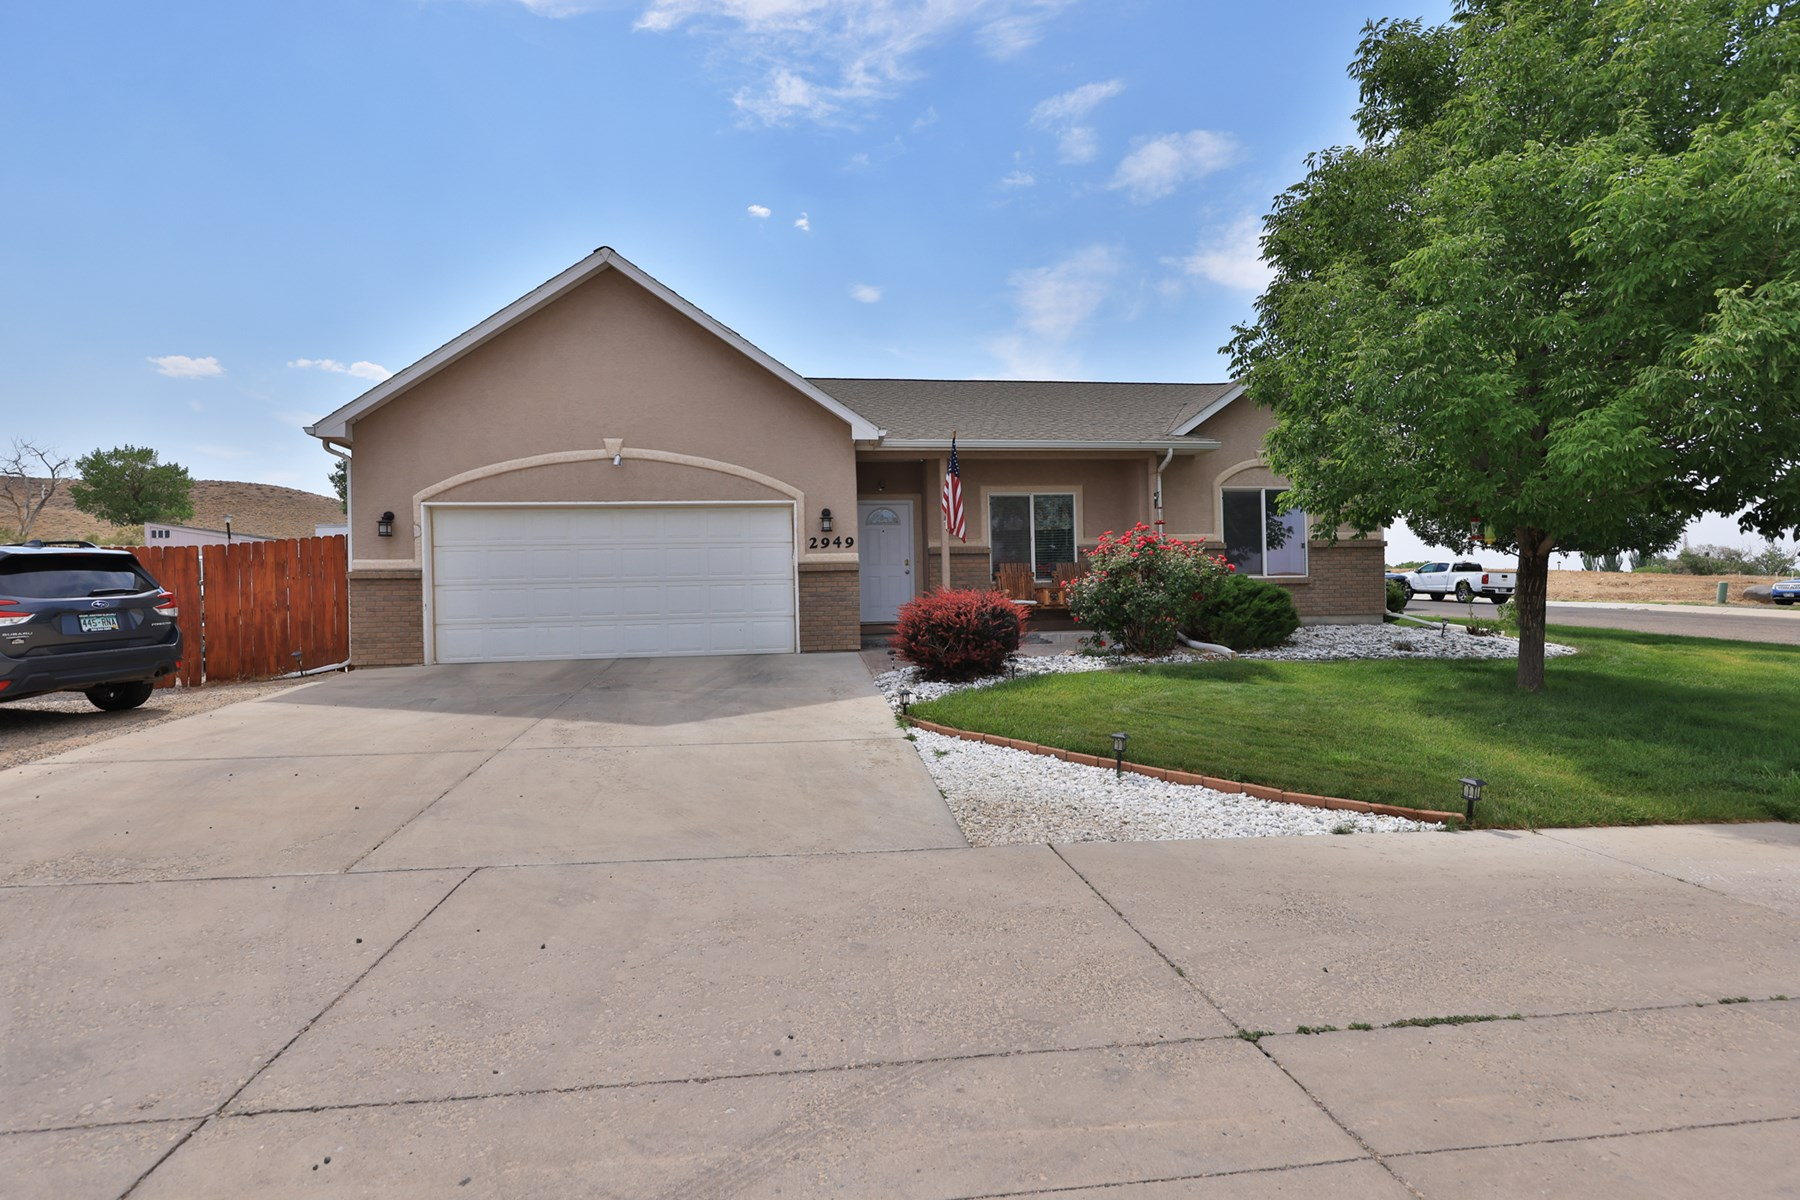 Affordable Home For Sale in Western Colorado